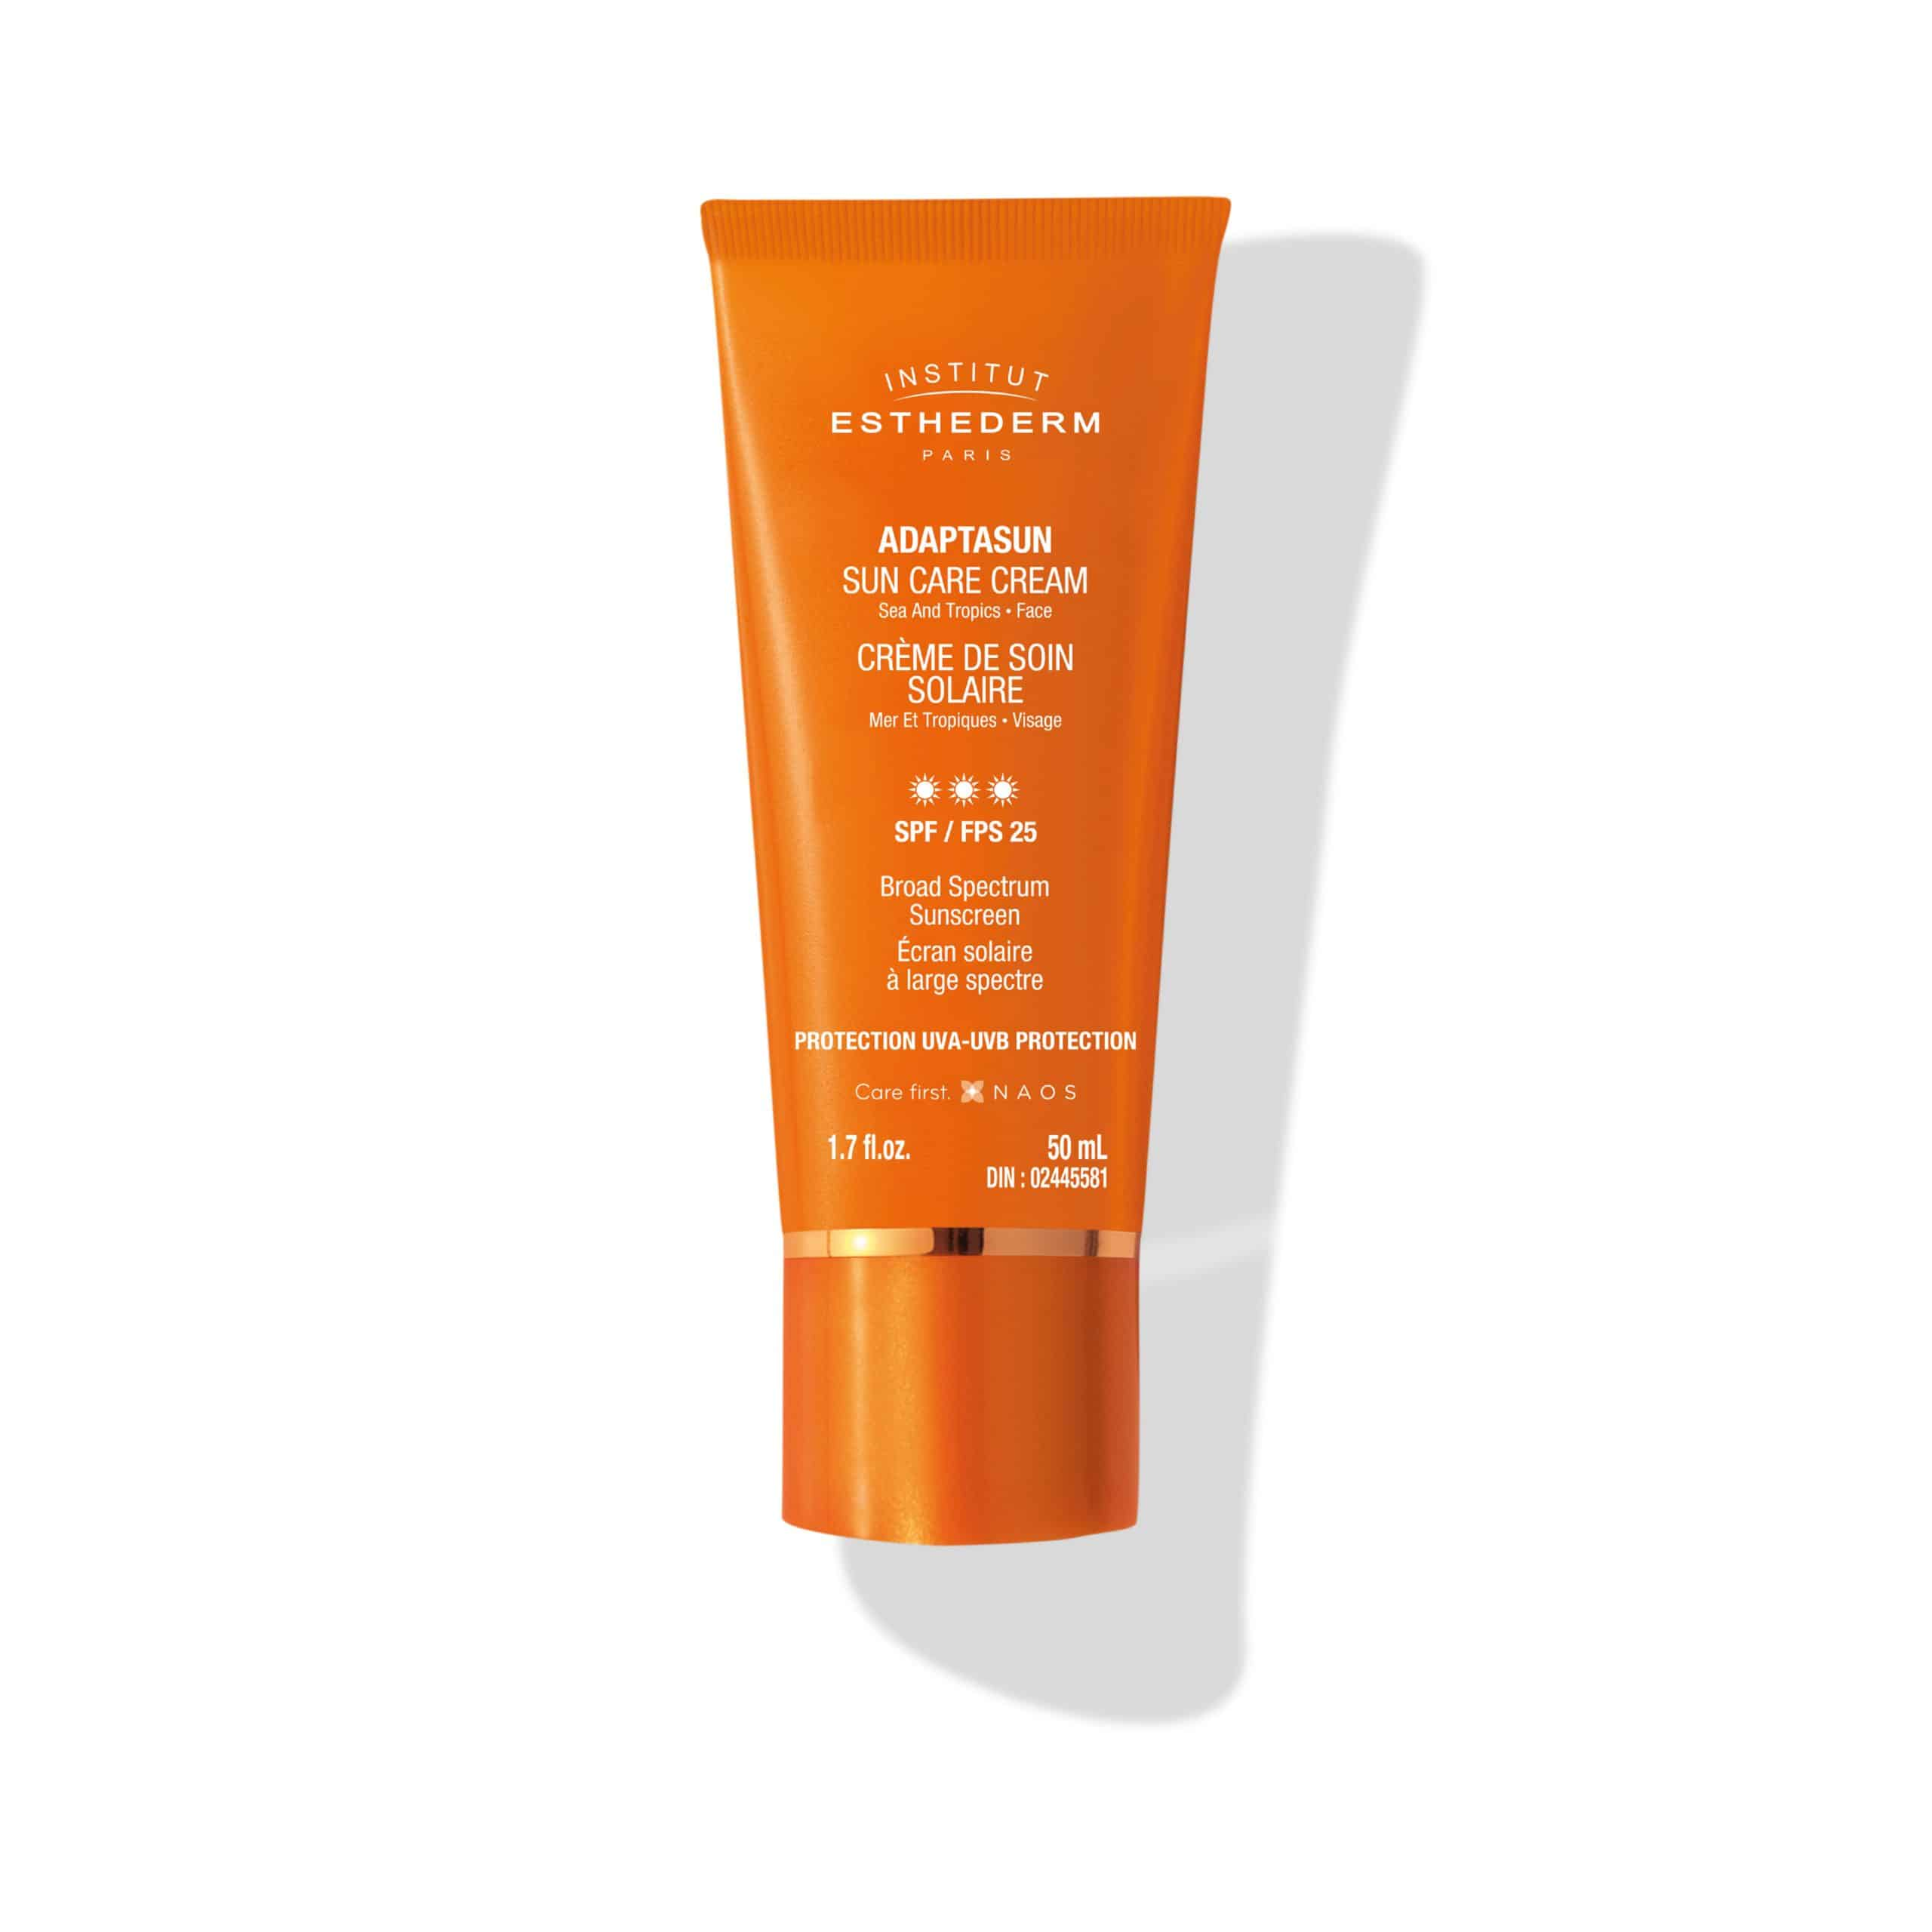 ESTHEDERM product photo, Sun Care Cream SPF 25 50ml, high UVA UVB sun protection, healthy tan, hydrating care